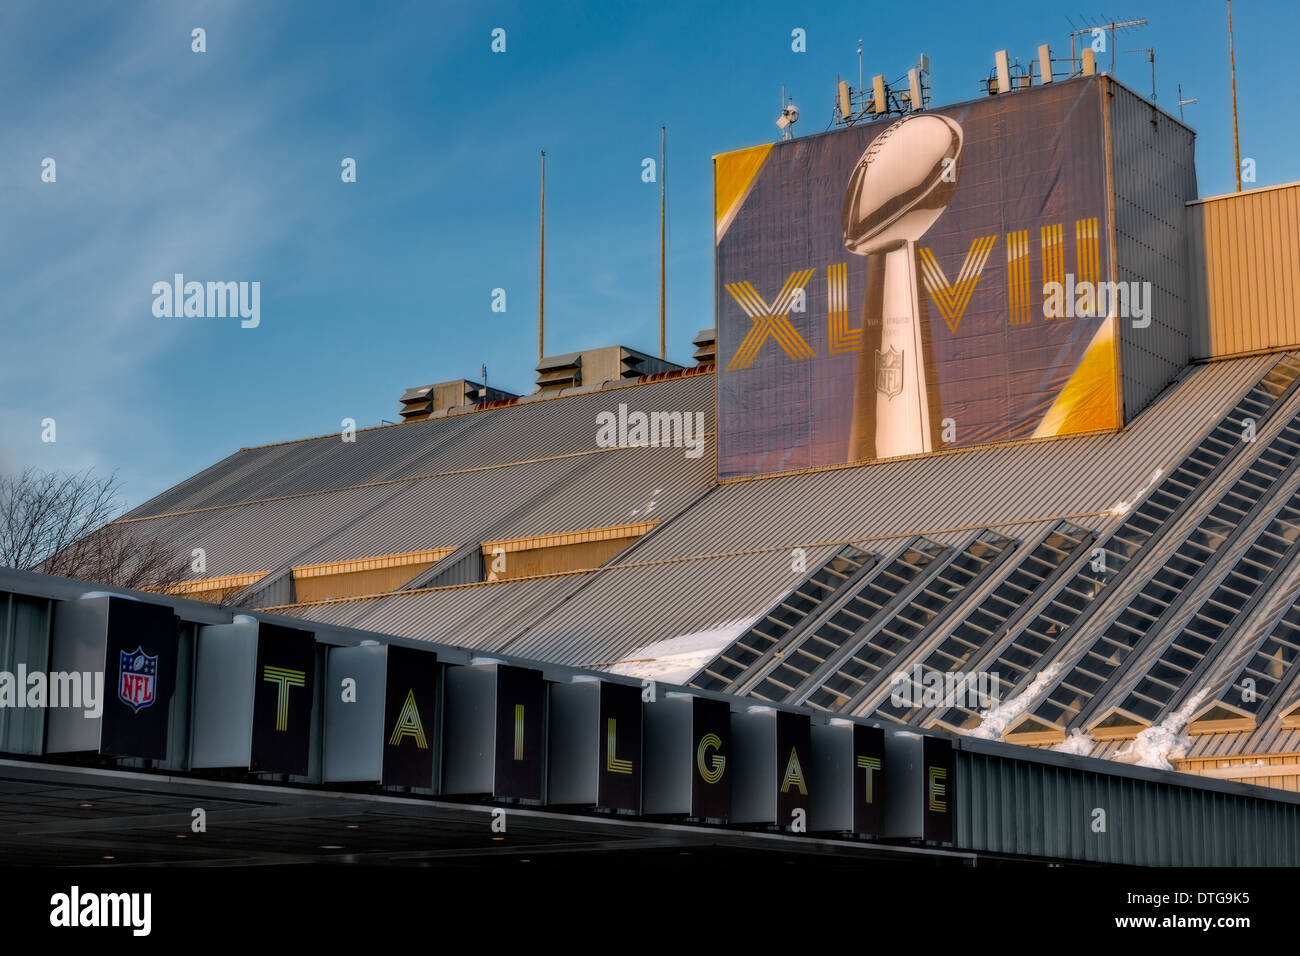 Sign of the Vince Lomardi Trophy along with Super Bowl XLVIII, on top of the NFL Tailgate section of the MetLife - Stock Image